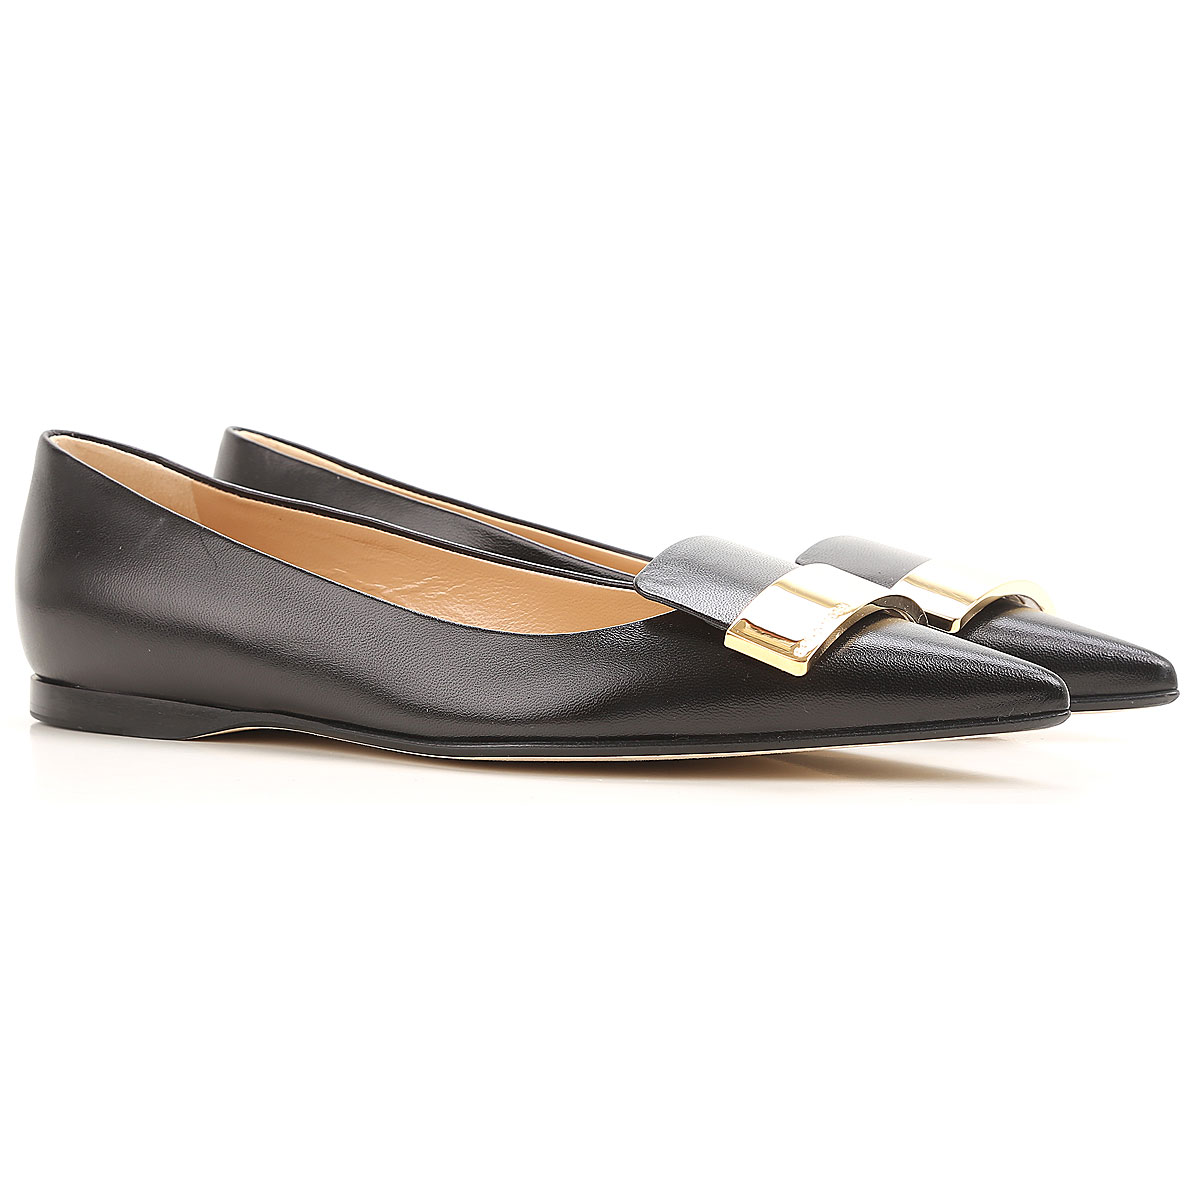 Image of Sergio Rossi Ballet Flats Ballerina Shoes for Women, Black, Leather, 2017, 6 7 8 9.5